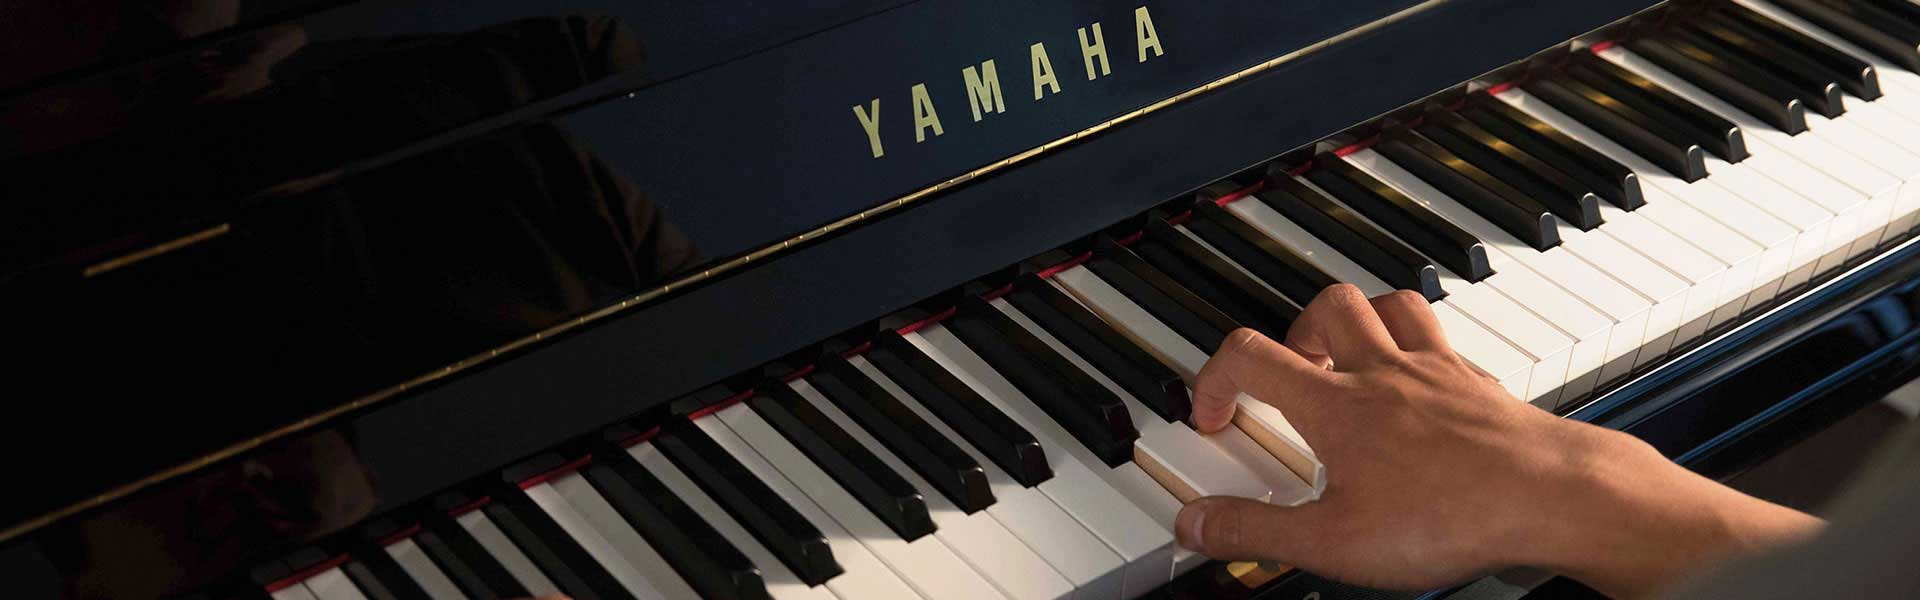 Yamaha Pianos at Riverton Piano Company